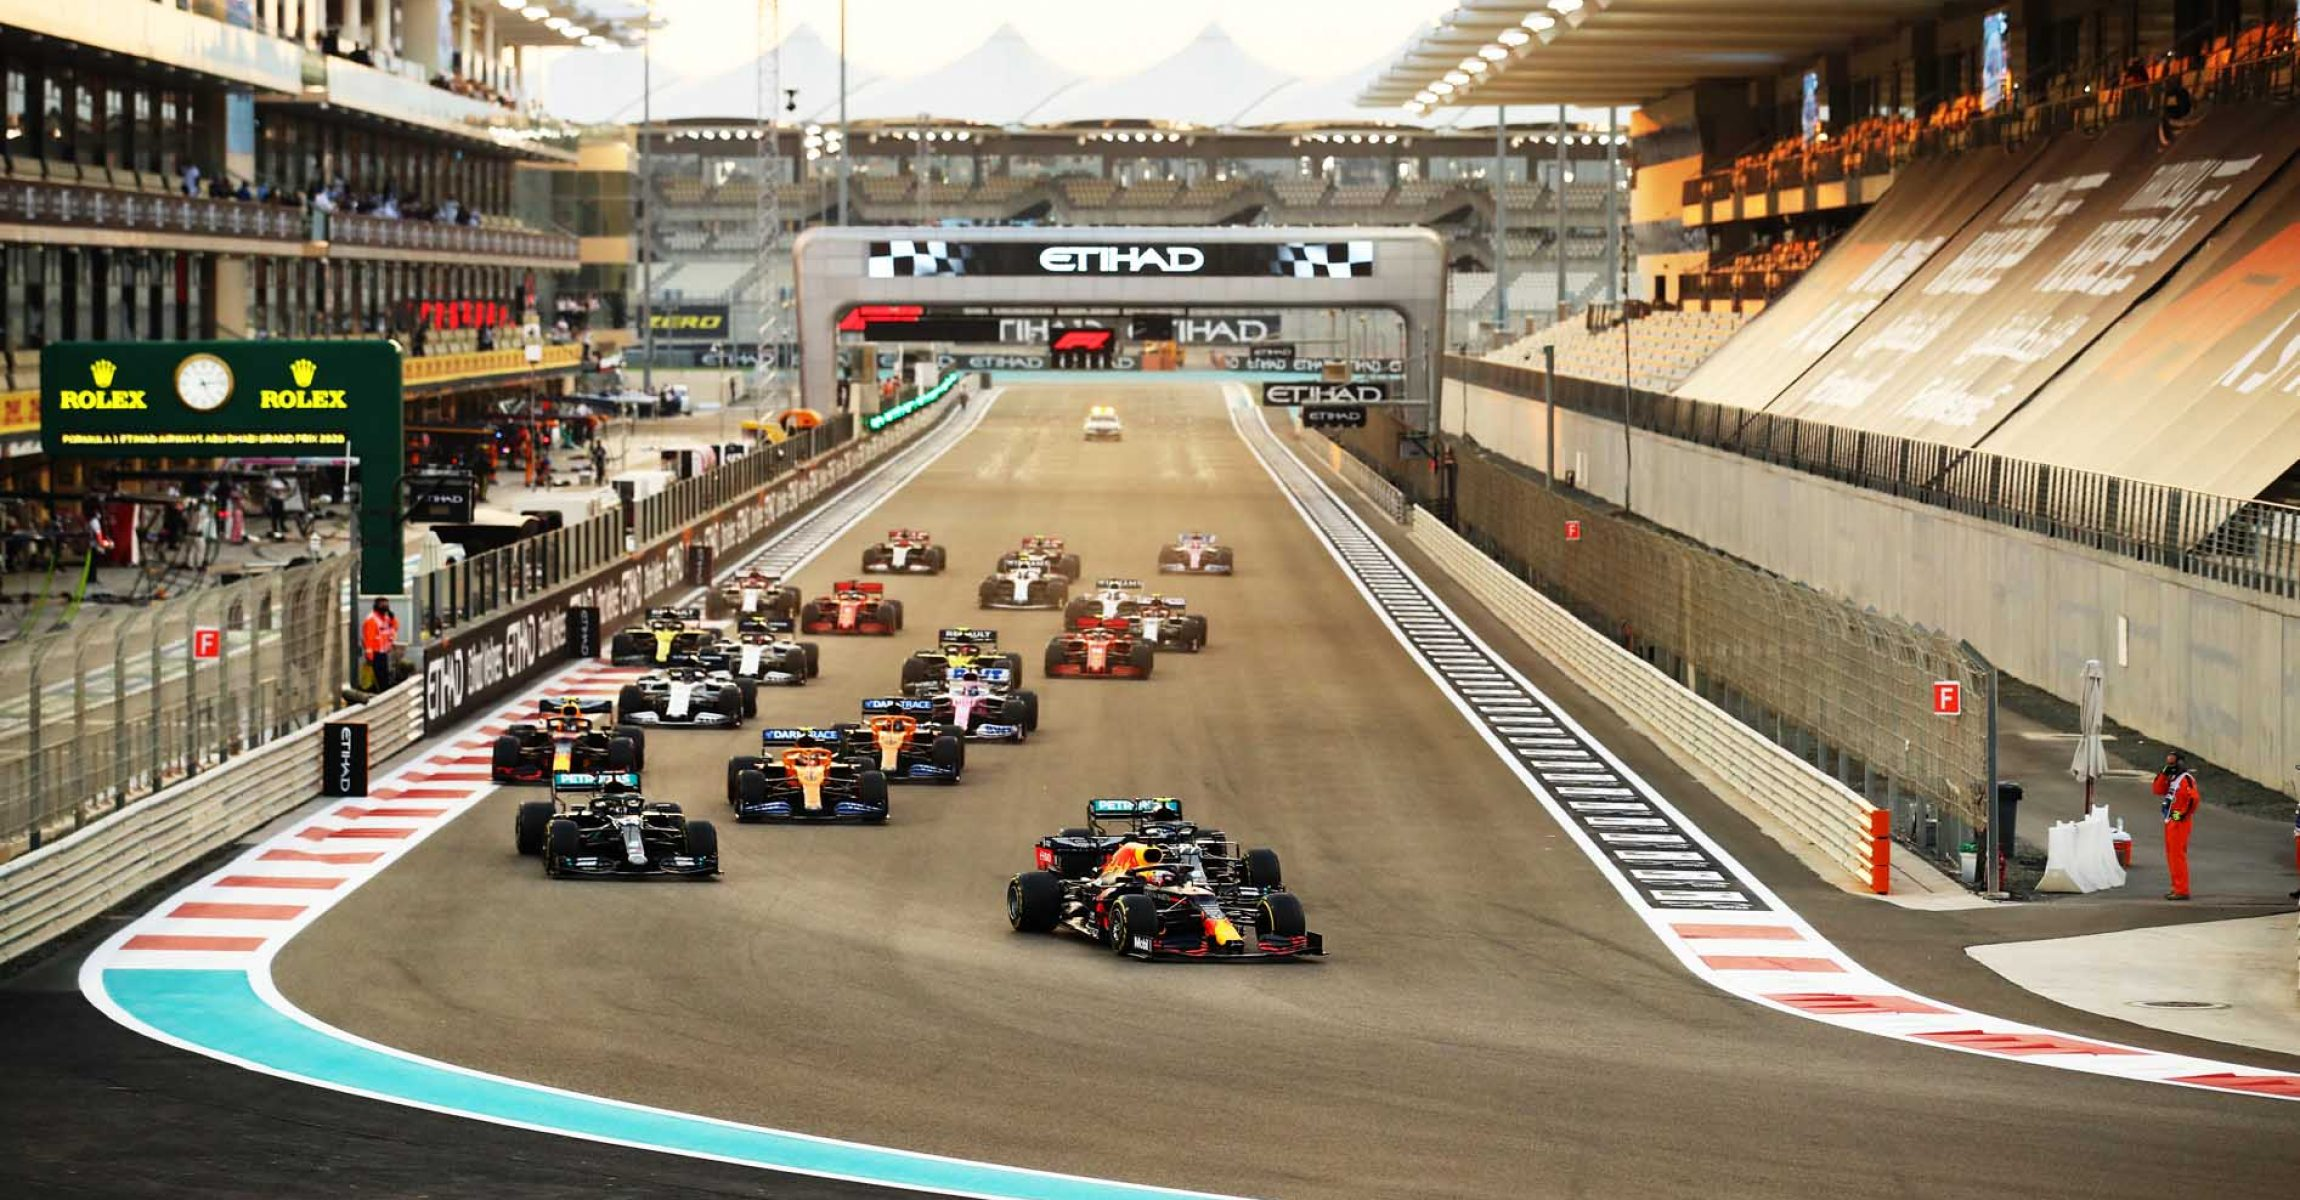 ABU DHABI, UNITED ARAB EMIRATES - DECEMBER 13: Max Verstappen of the Netherlands driving the (33) Aston Martin Red Bull Racing RB16 leads Lewis Hamilton of Great Britain driving the (44) Mercedes AMG Petronas F1 Team Mercedes W11 and Valtteri Bottas of Finland driving the (77) Mercedes AMG Petronas F1 Team Mercedes W11 into turn one at the start during the F1 Grand Prix of Abu Dhabi at Yas Marina Circuit on December 13, 2020 in Abu Dhabi, United Arab Emirates. (Photo by Bryn Lennon/Getty Images)